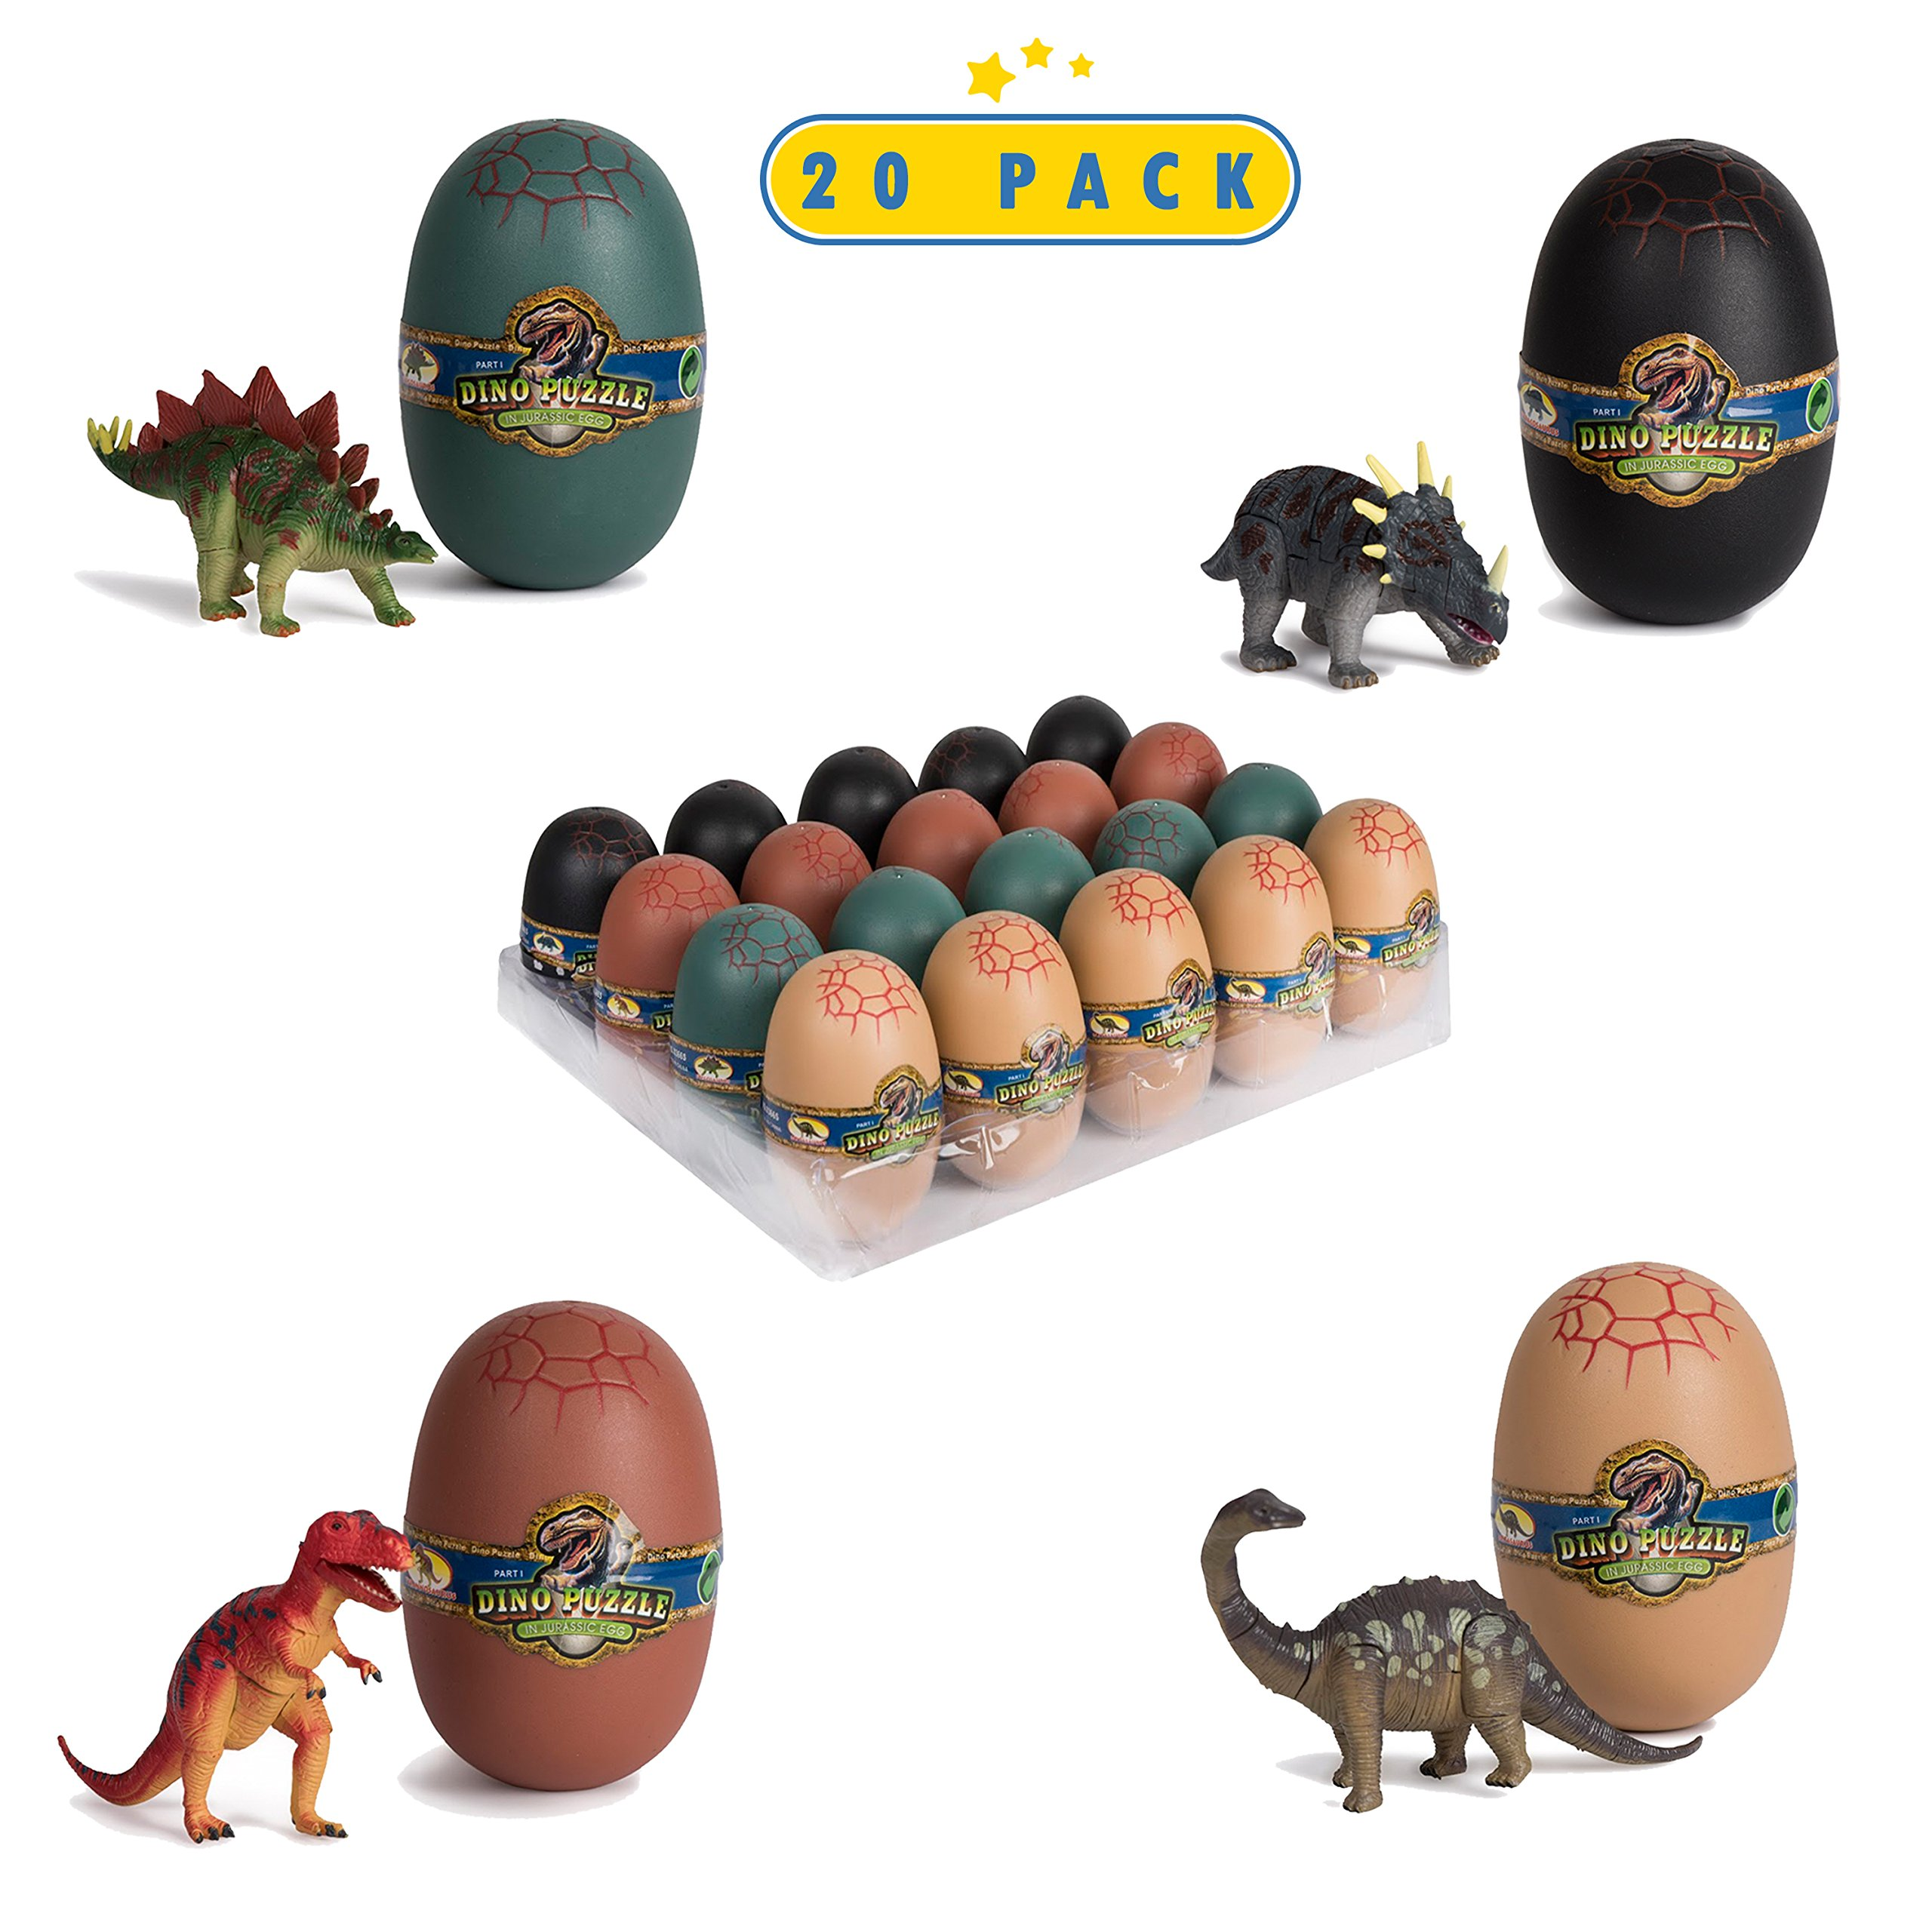 20 3D Dinosaur Puzzles In Dino Eggs - Jurassic Egg With Dinosaur Figures- Dinosaurs Toys For Kids Party Favors And Dinosaur Party, Easter Basket Fillers Easter Eggs Toys For Boys by Toyrifik